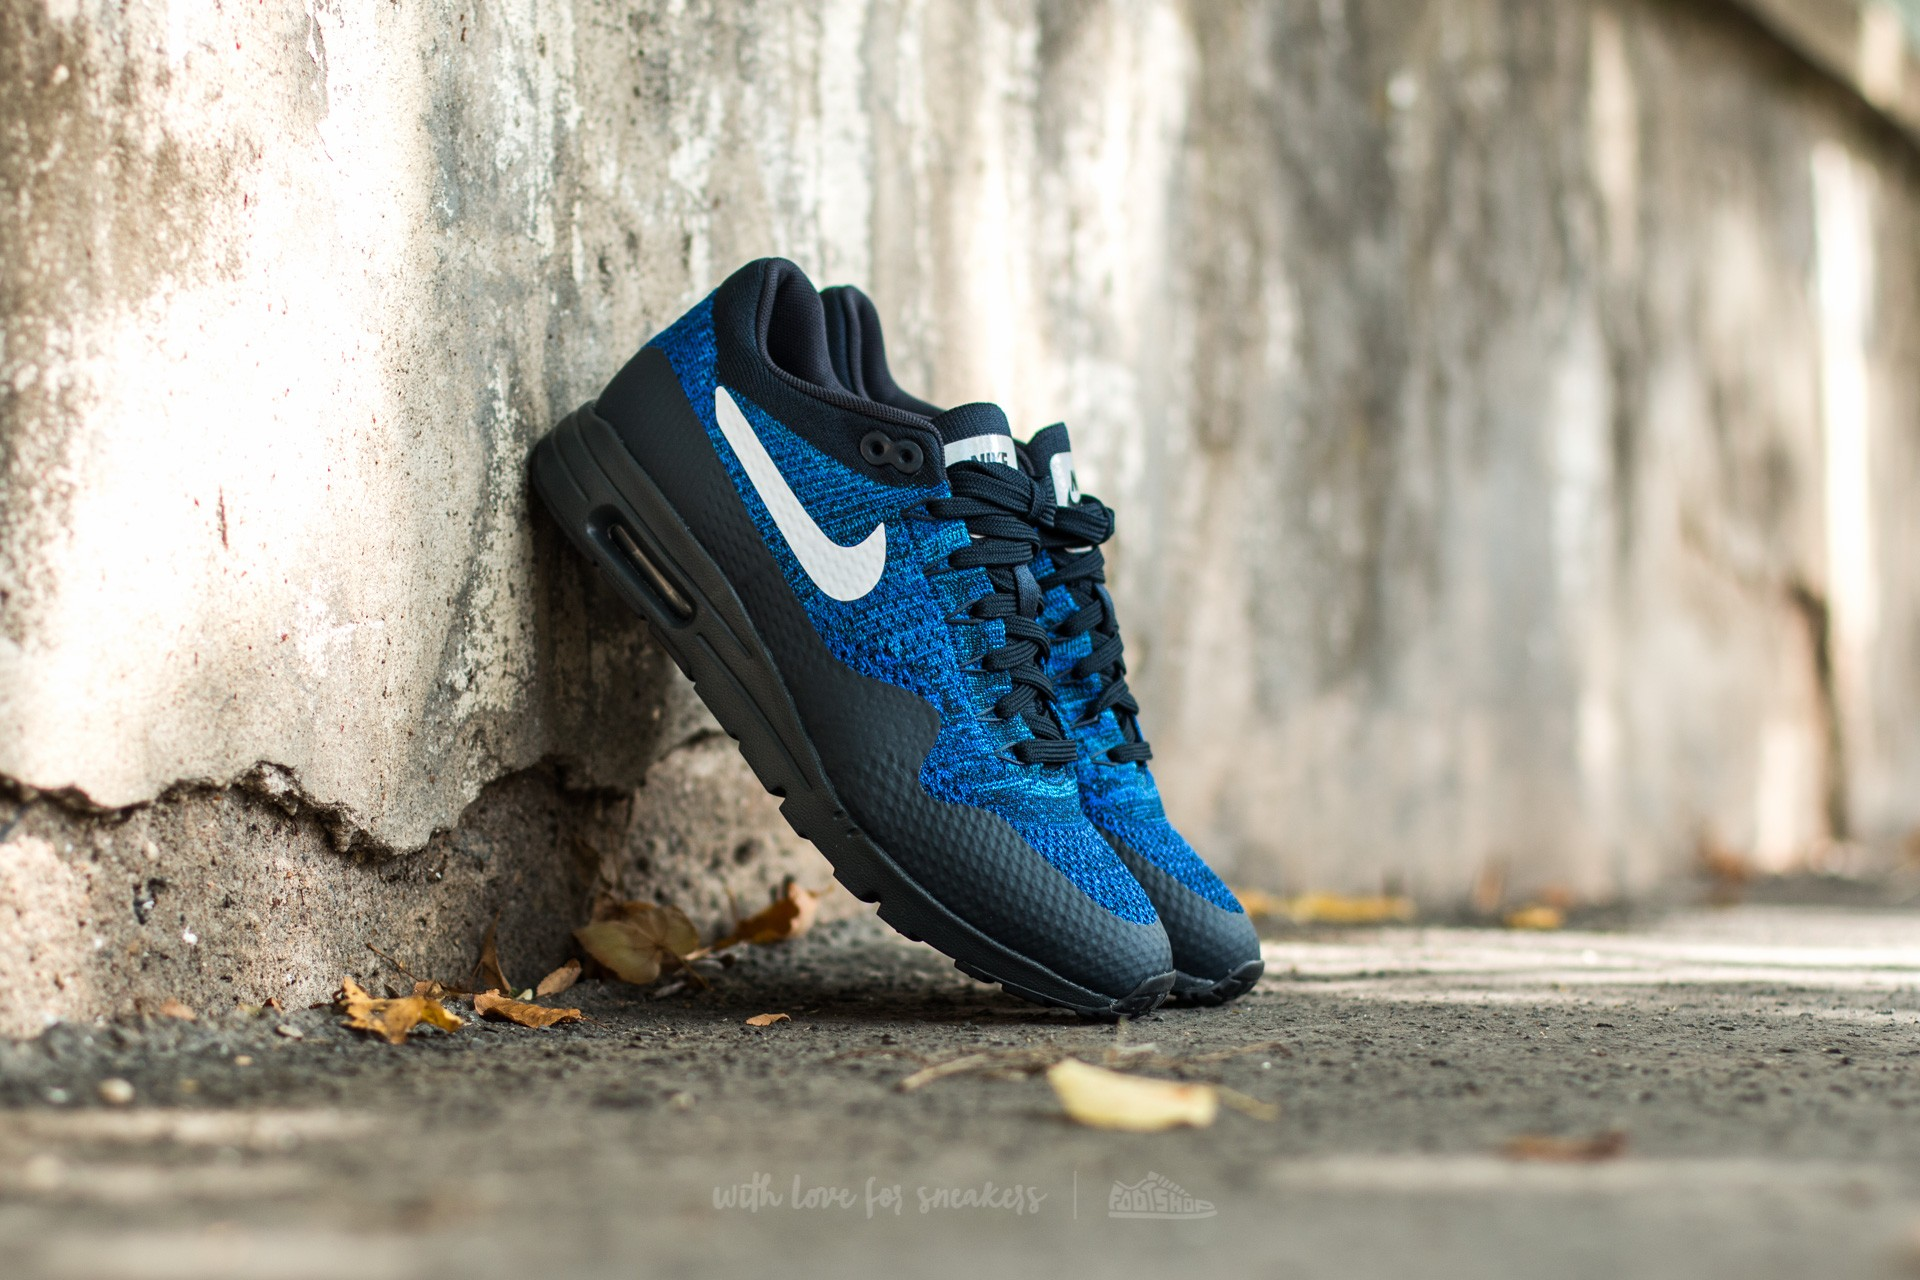 Nike W Air Max 1 Ultra Flyknit Dark Obsidian/ White-Racer Blue-Photo Blue